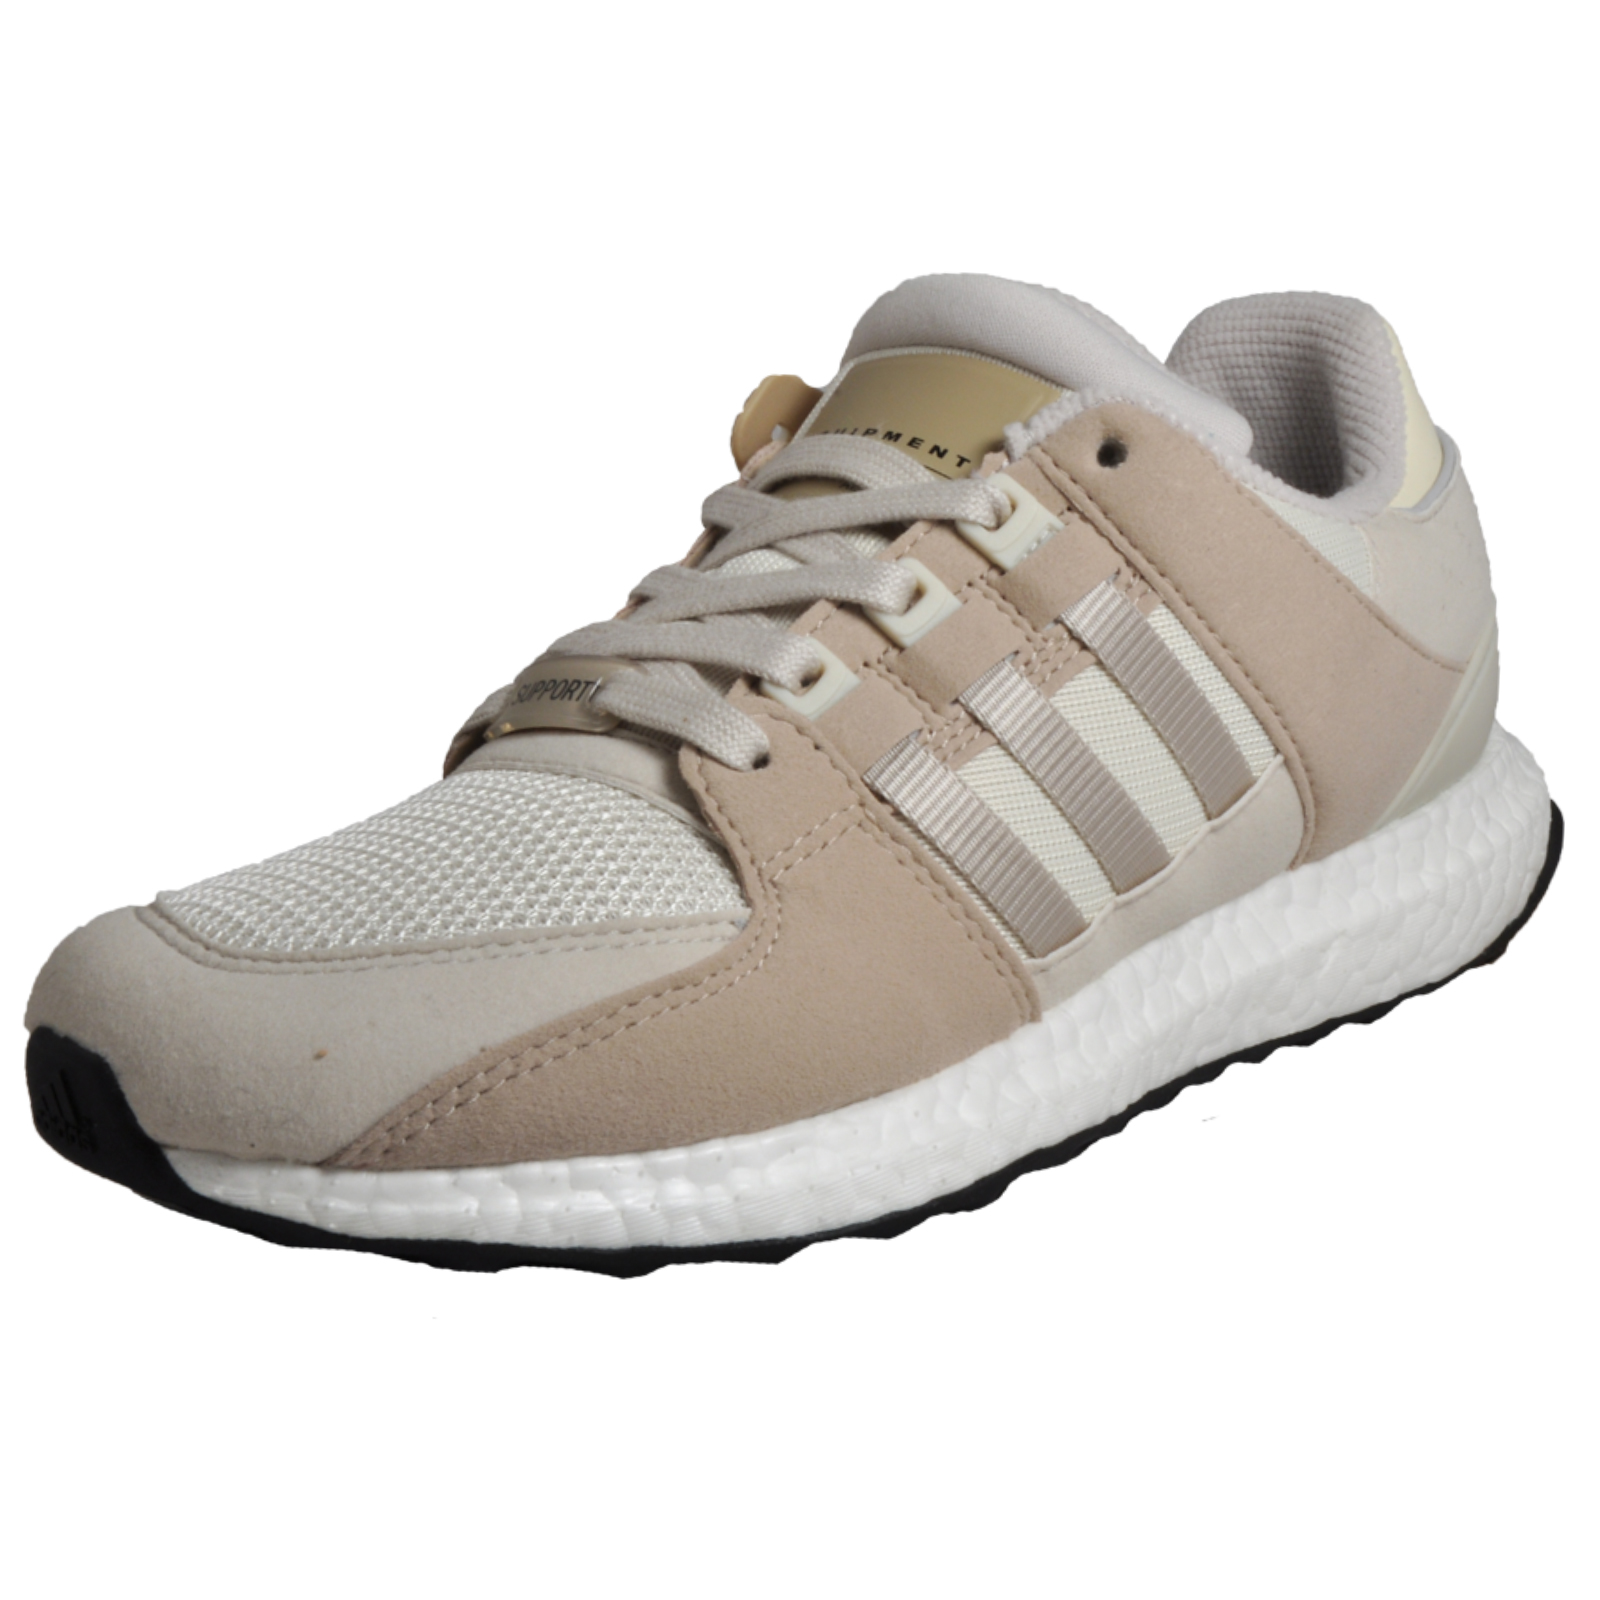 a53d5952816f Details about Adidas Originals EQT Support Ultraboost Classic Retro Fashion  Trainers Beige